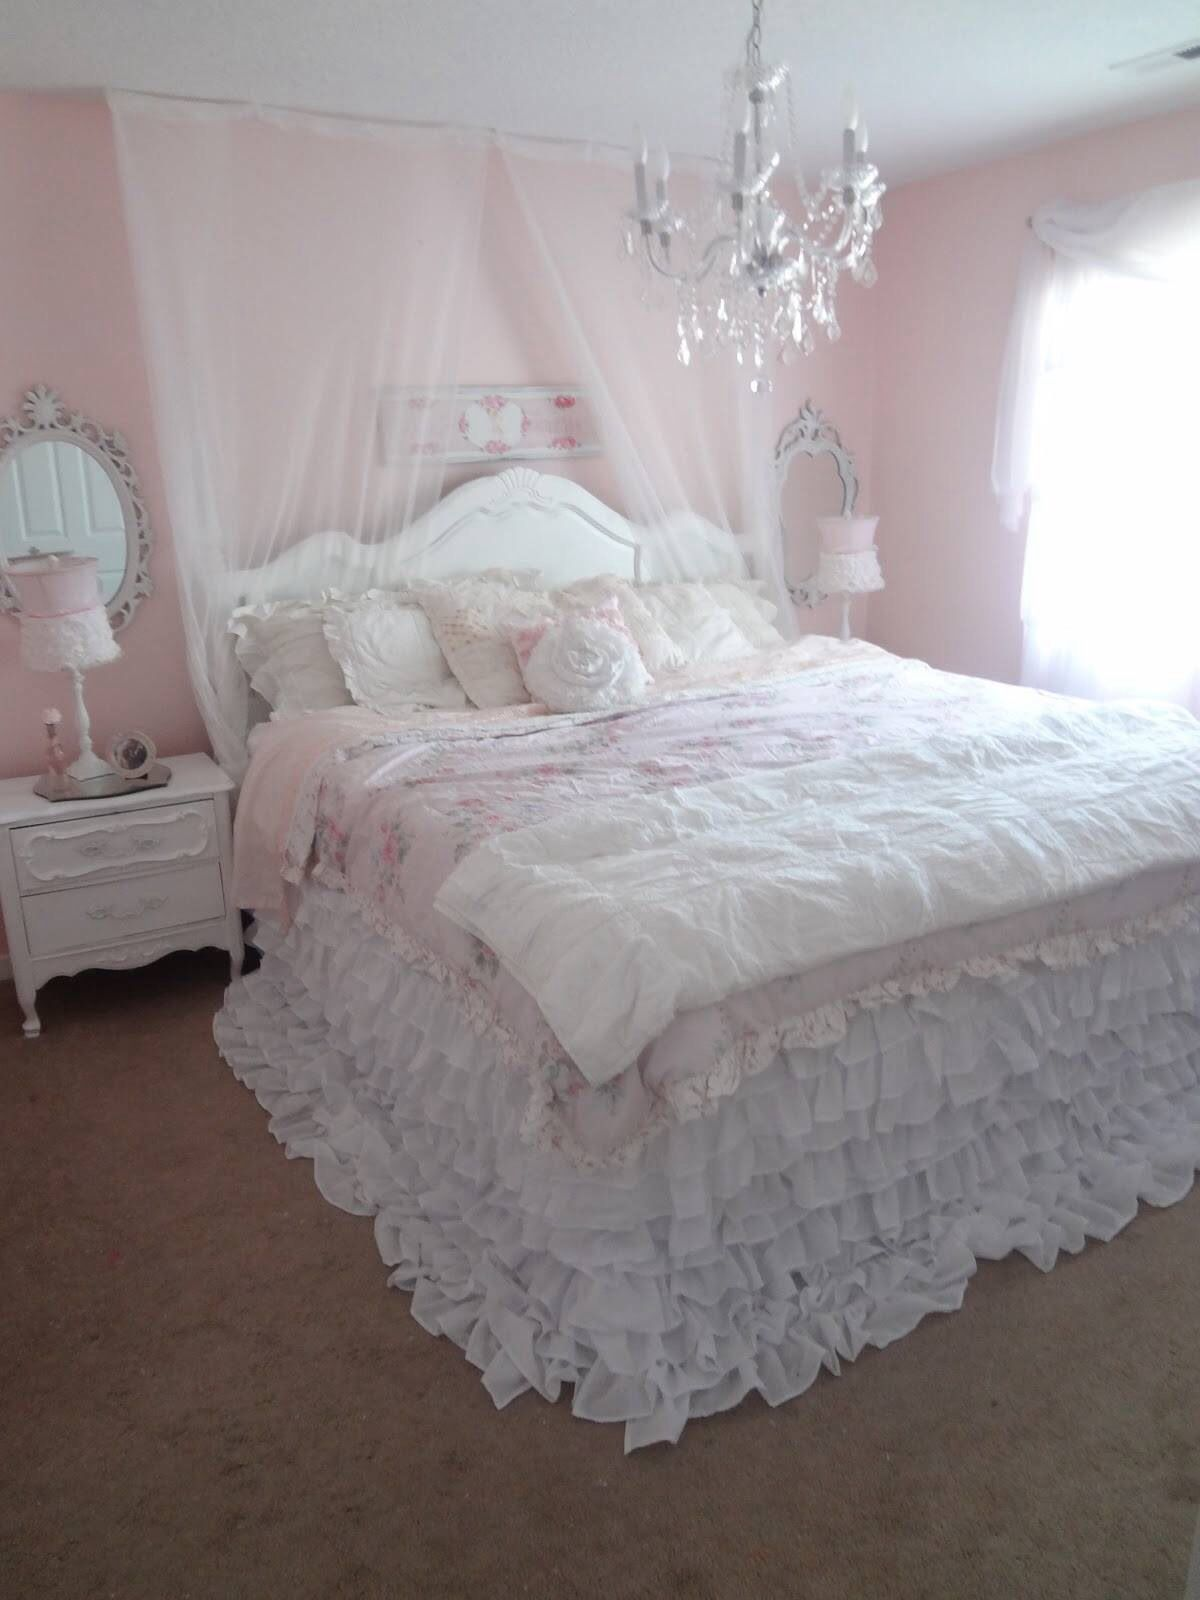 Cozy ruffled bed. Peaceful. | For the Home | Pinterest ...